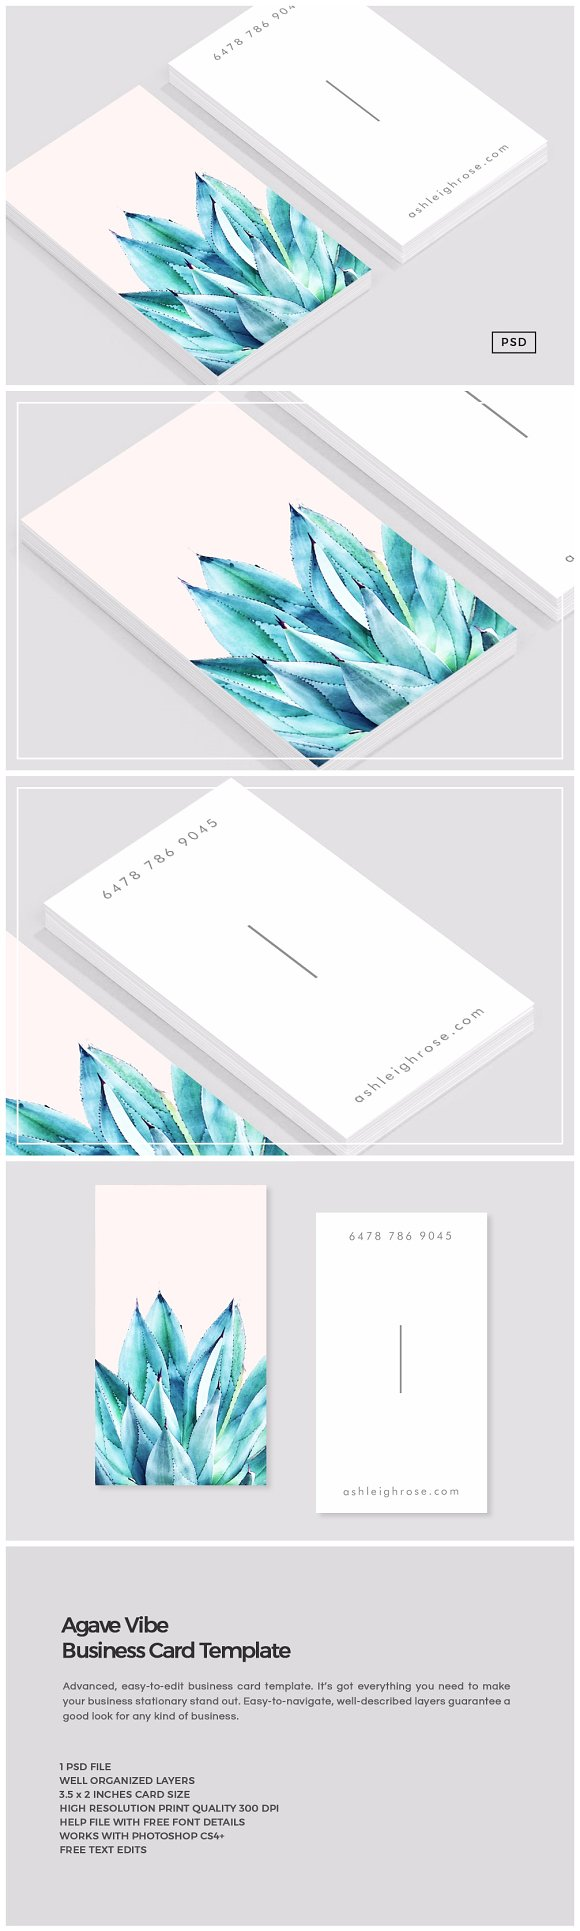 Agave vector free designtube creative design content - Design and print business cards at home ...